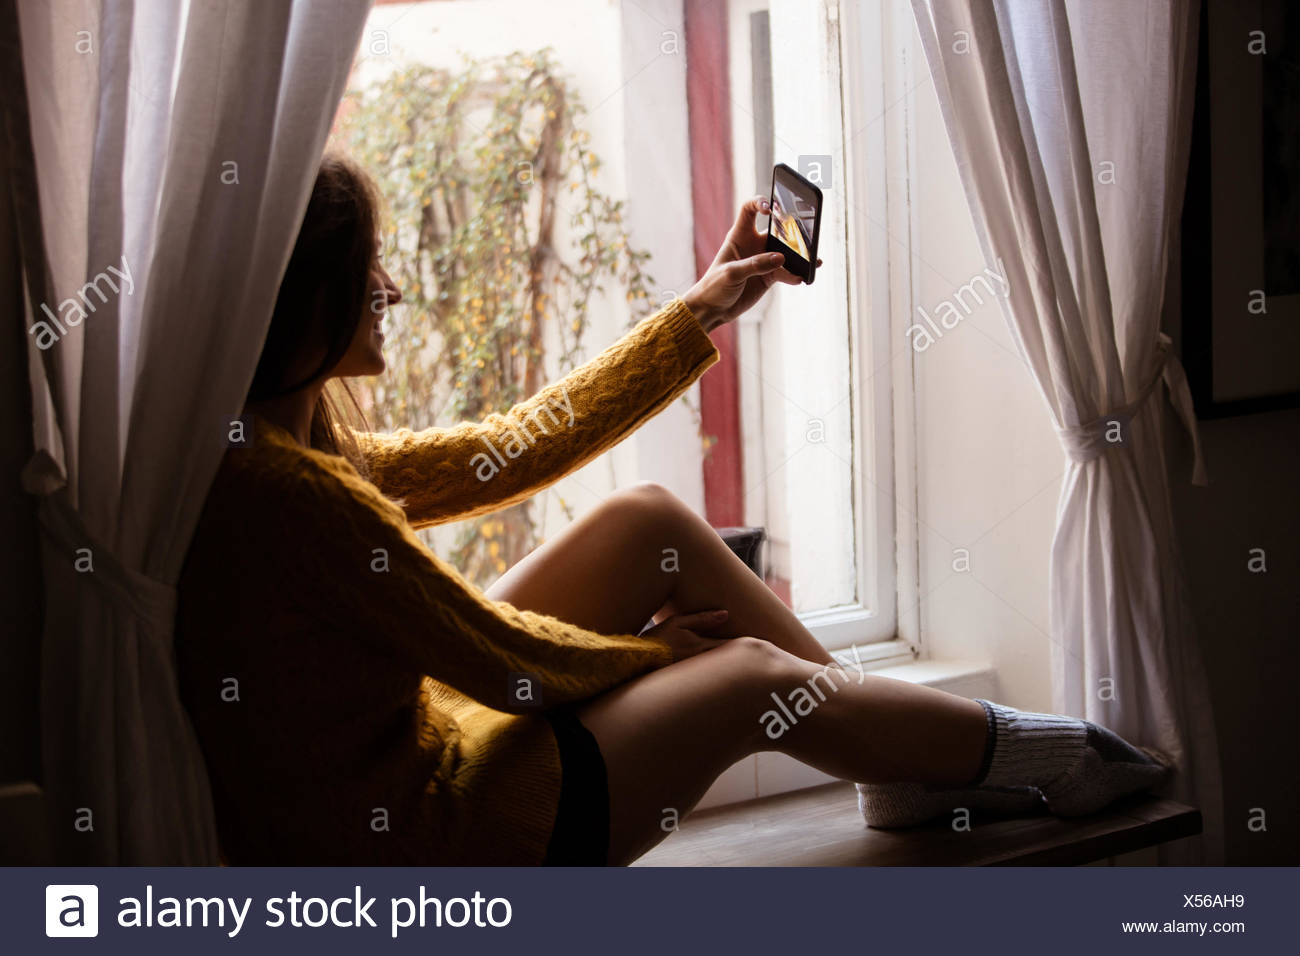 Young woman taking a selfie near the window - Stock Image